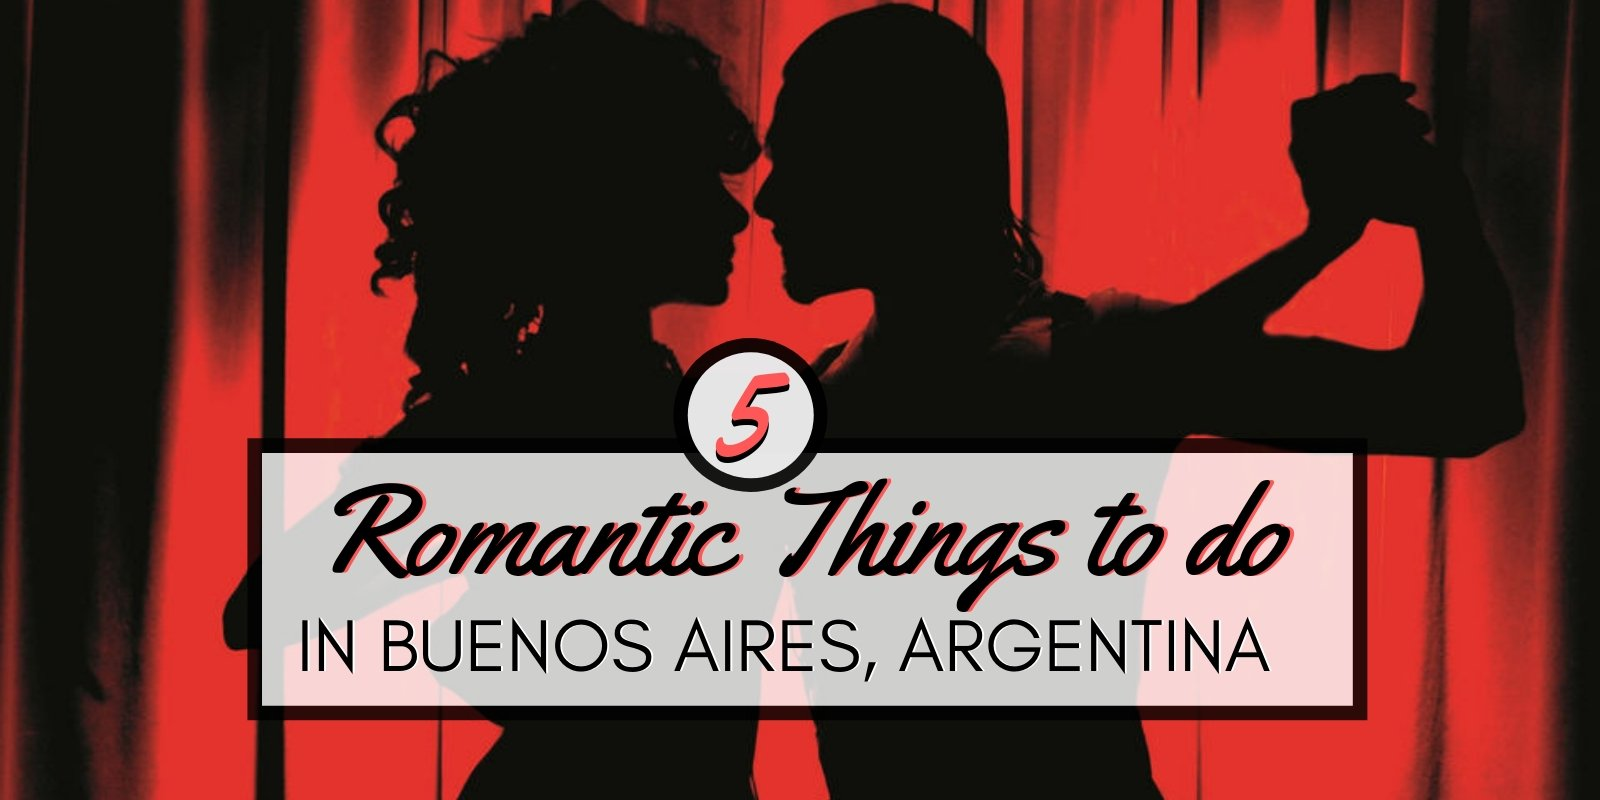 The five most romantic things to do in Buenos Aires.